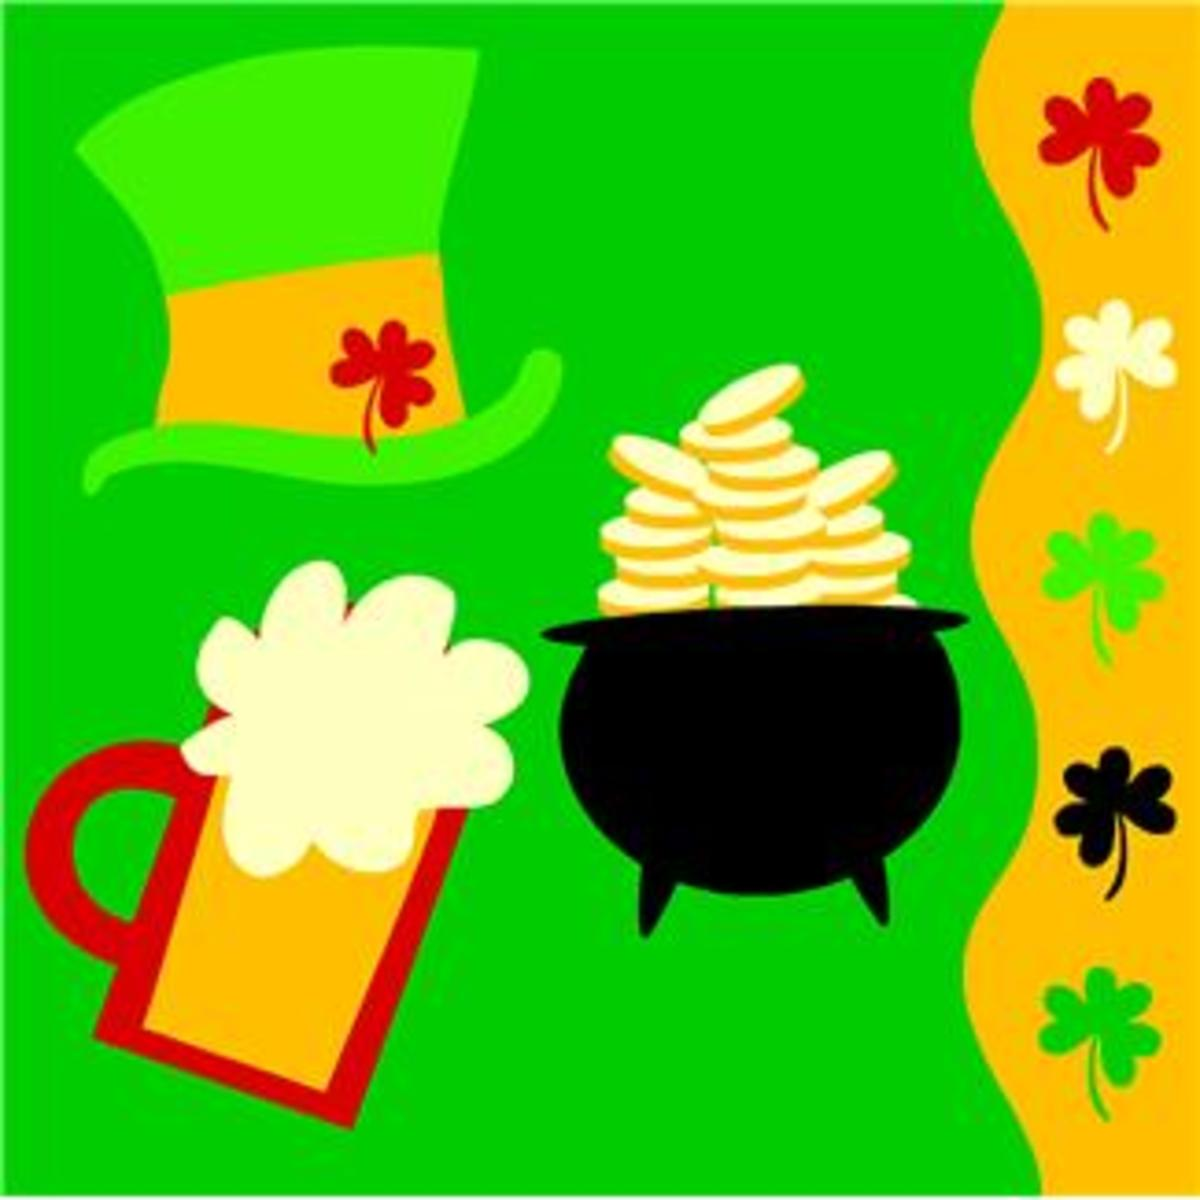 200 ST. PATRICK'S DAY IMAGES and Shamrock Clip Art